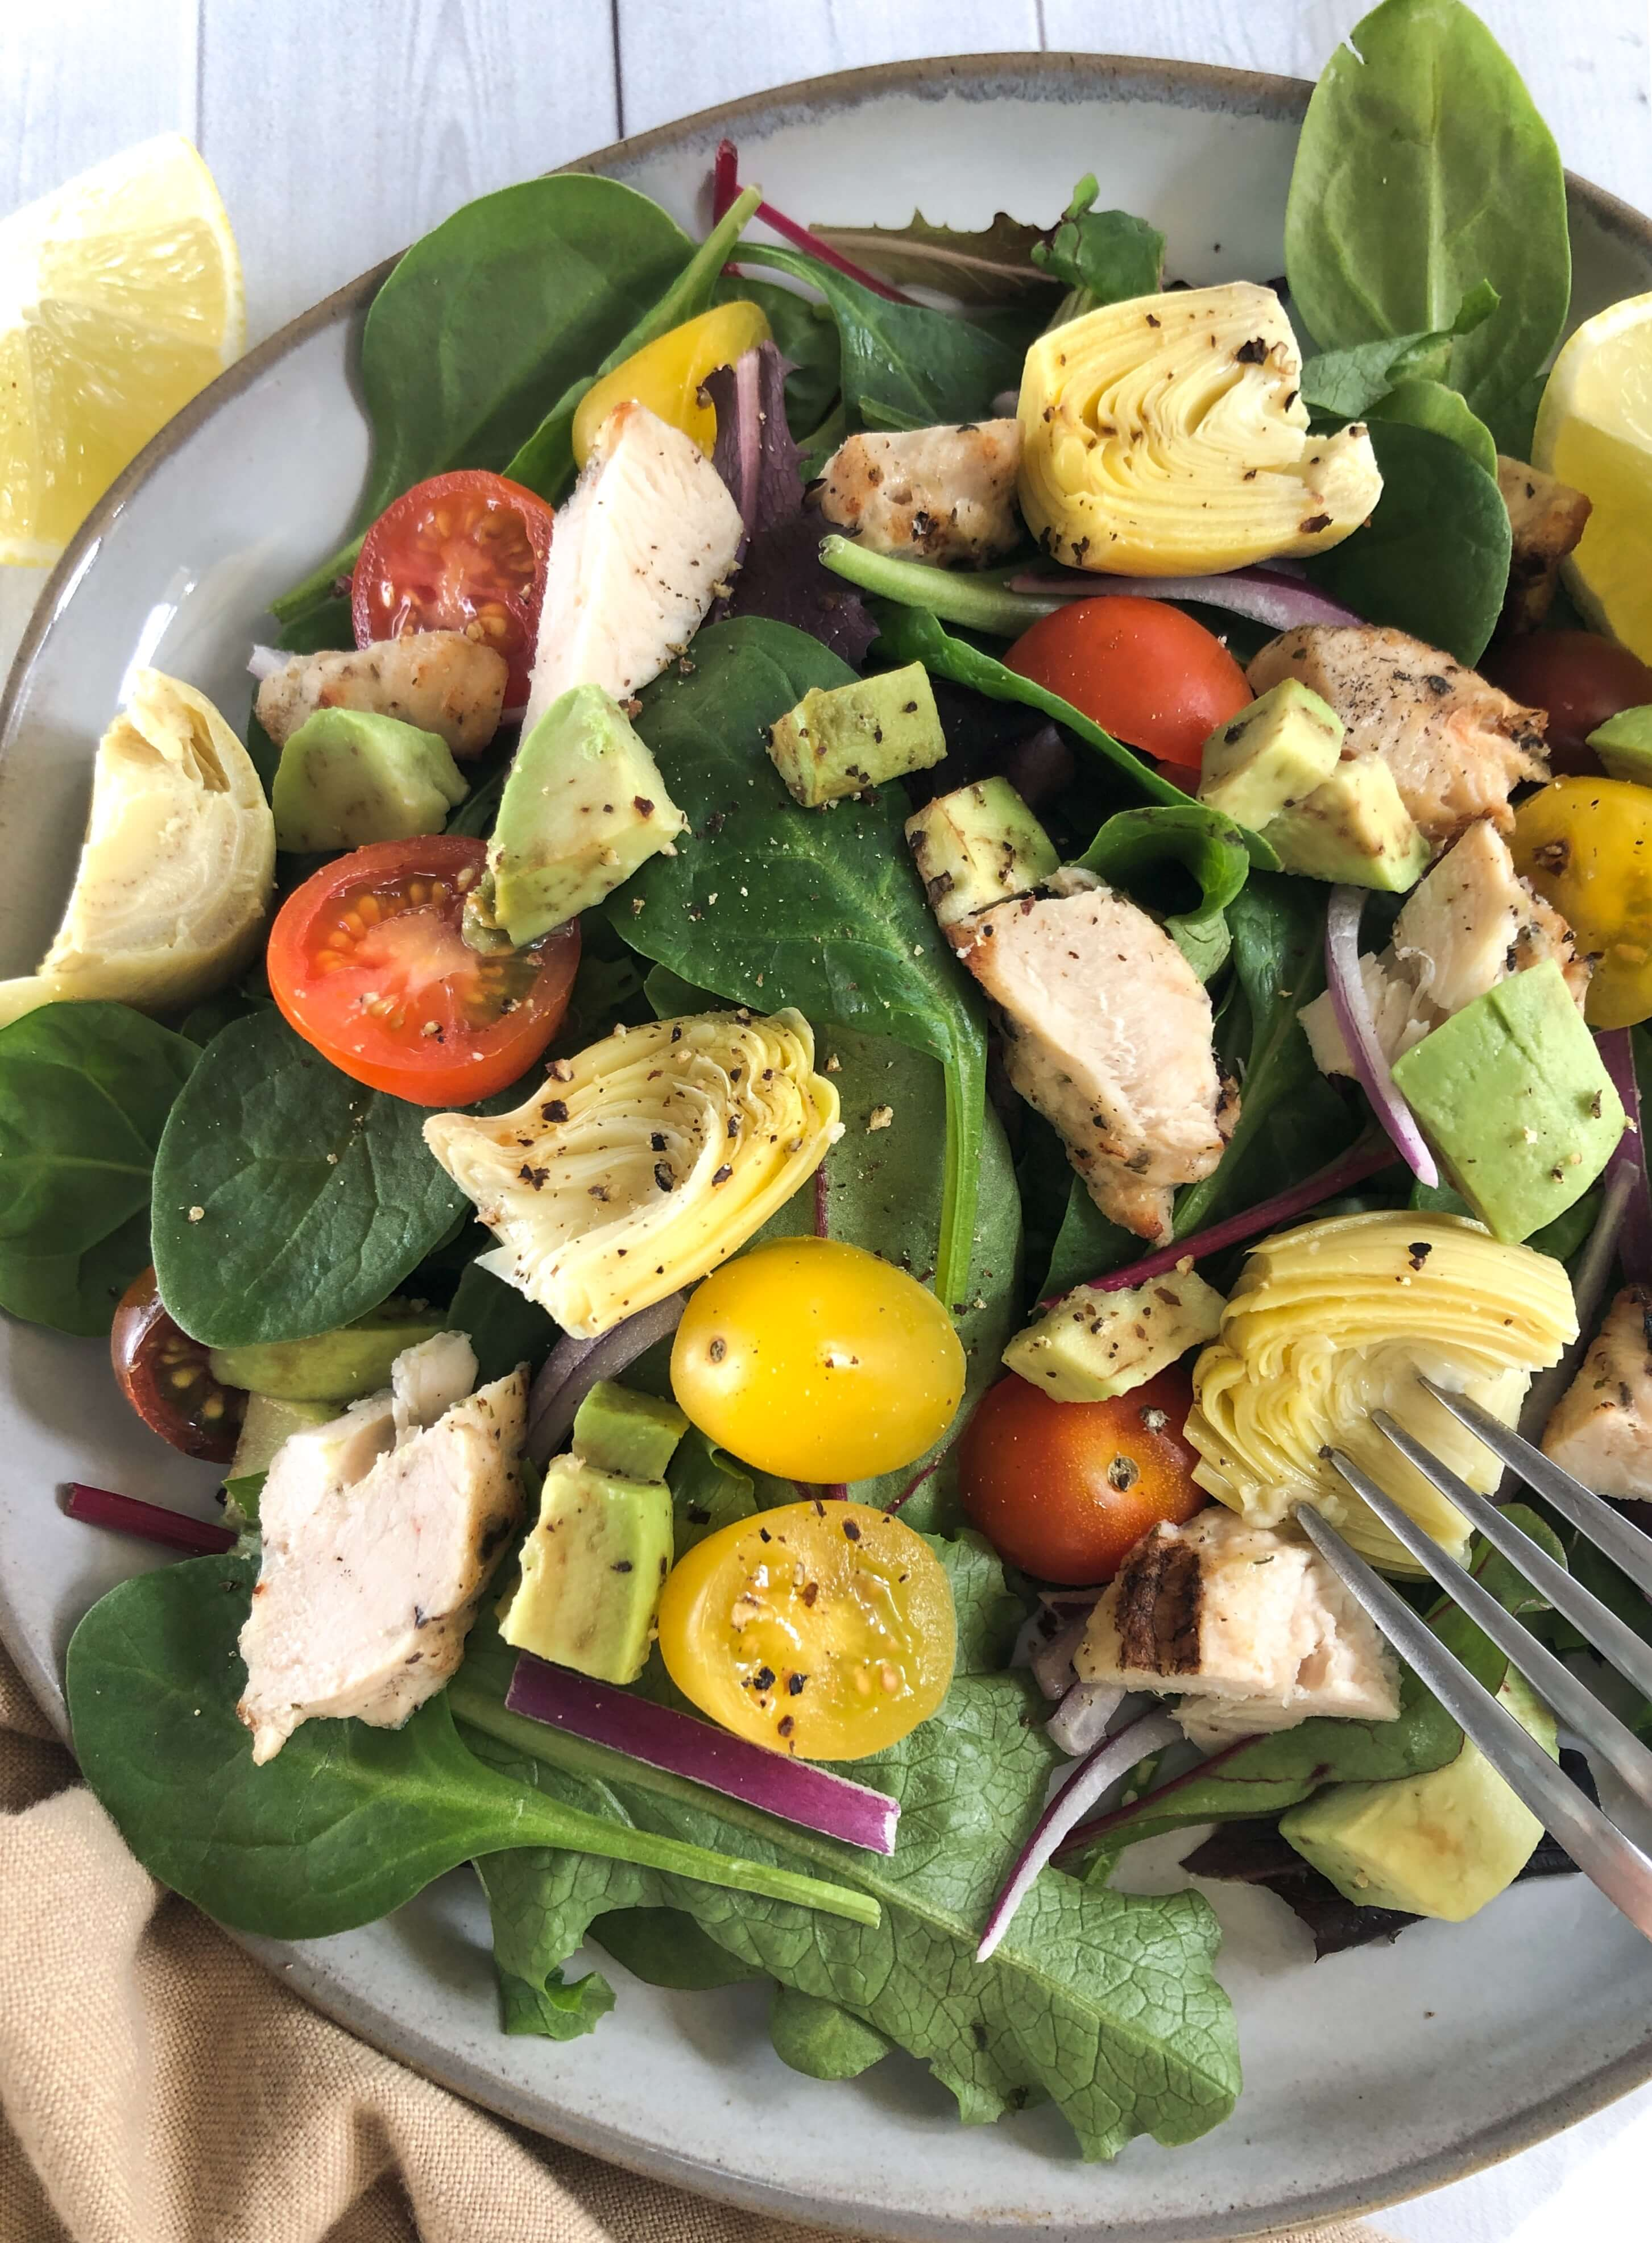 Salad with mixed greens, chicken artichokes and tomatoes on a plate with lemon.